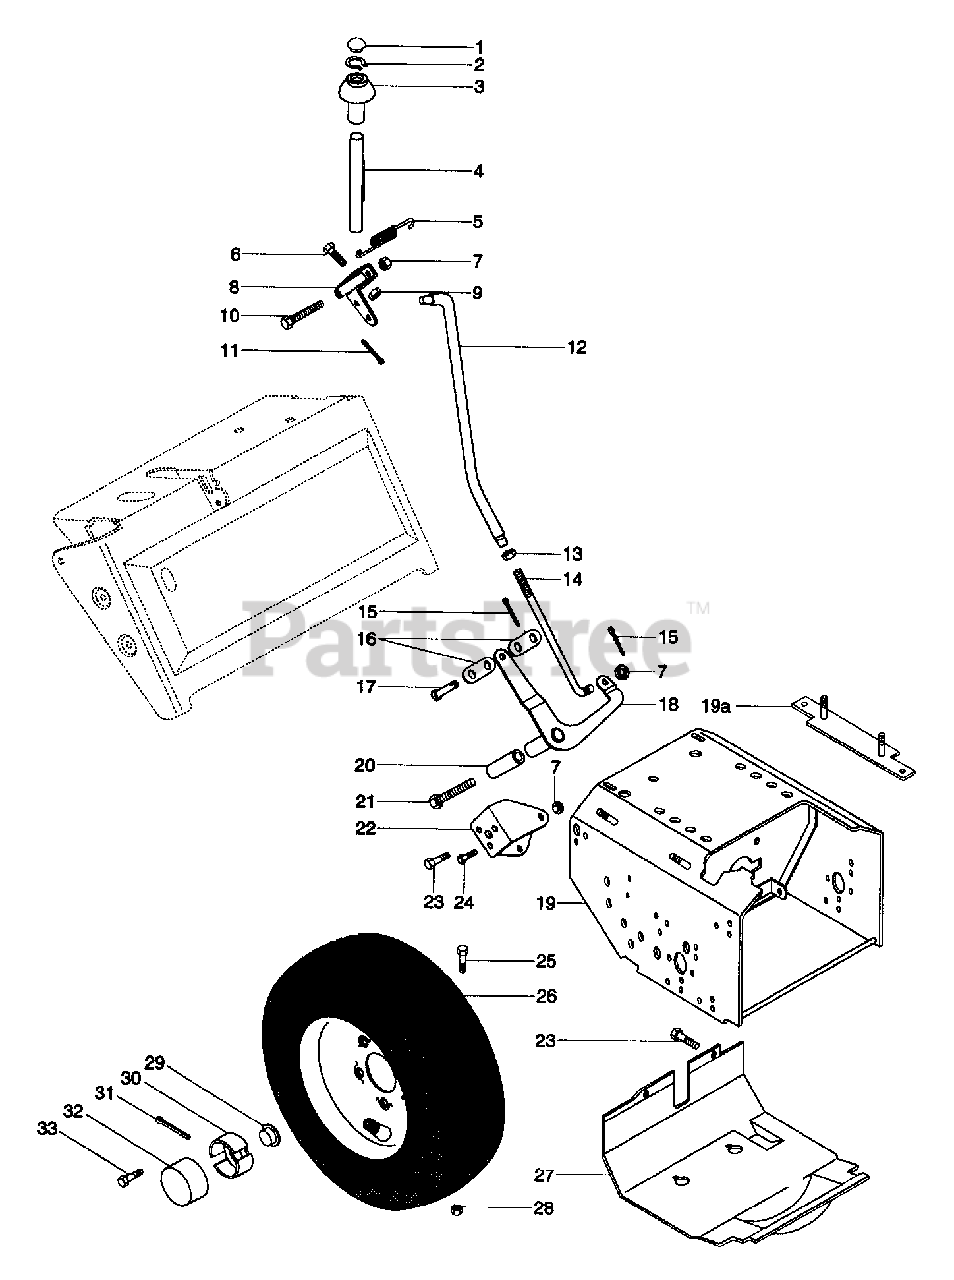 Ariens Parts on the Speed Selector And Wheels Diagram for